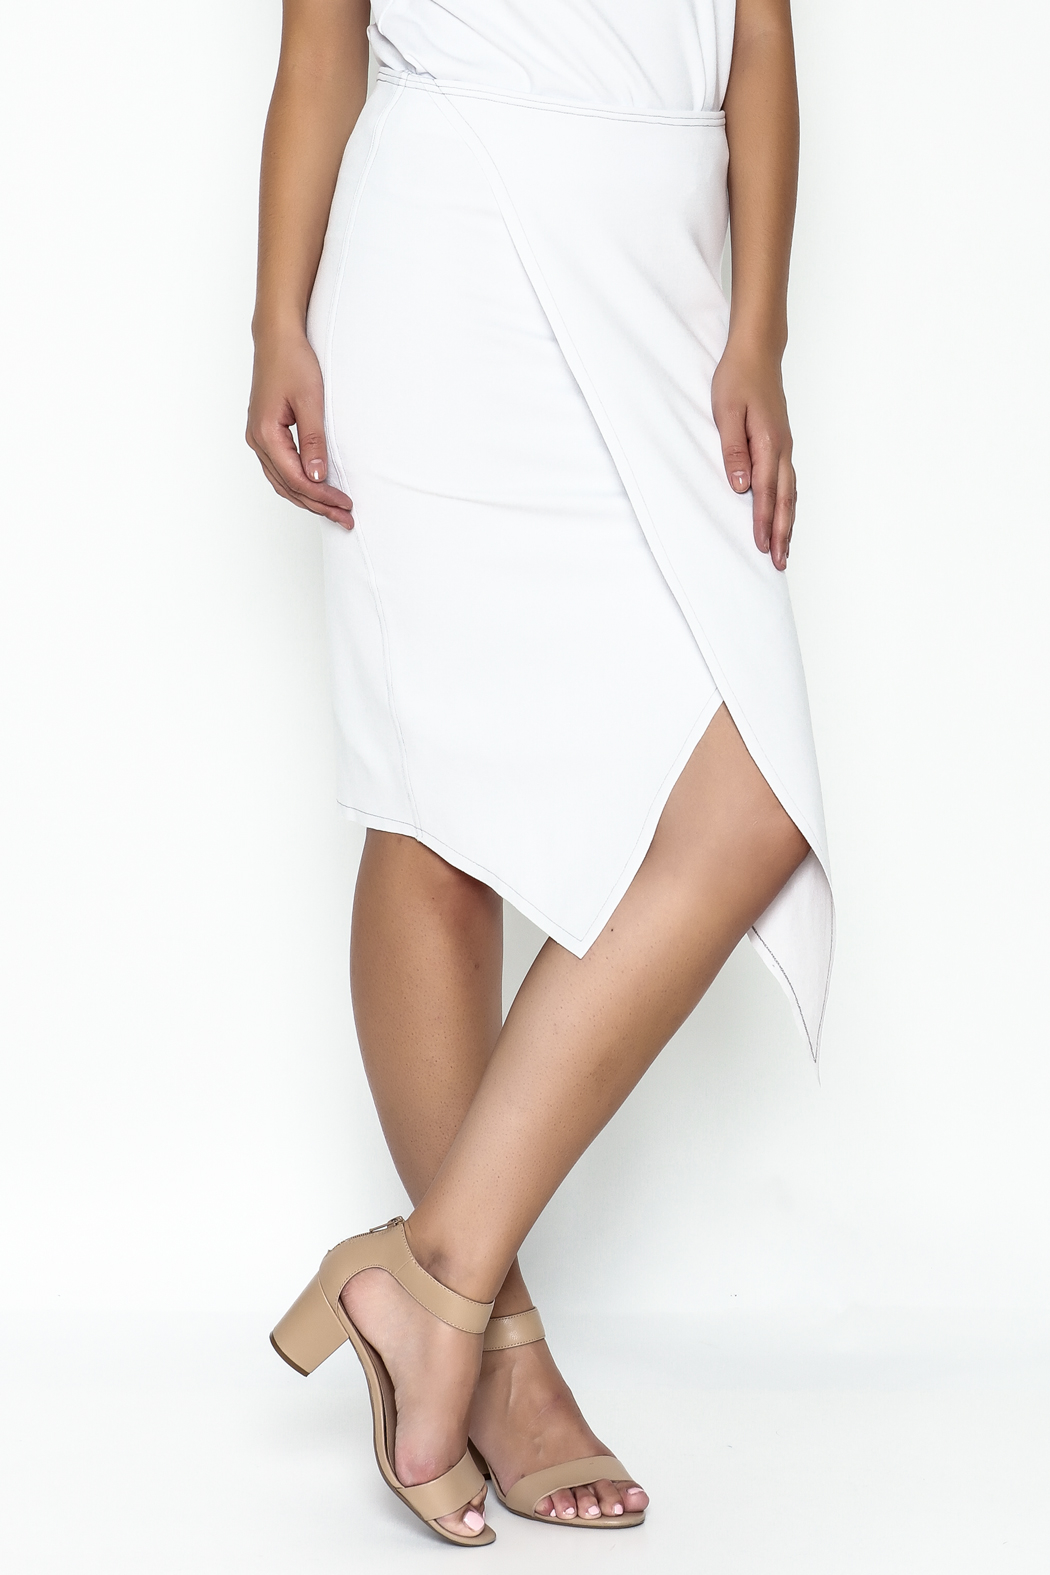 Vertex Dina Skirt - Front Cropped Image